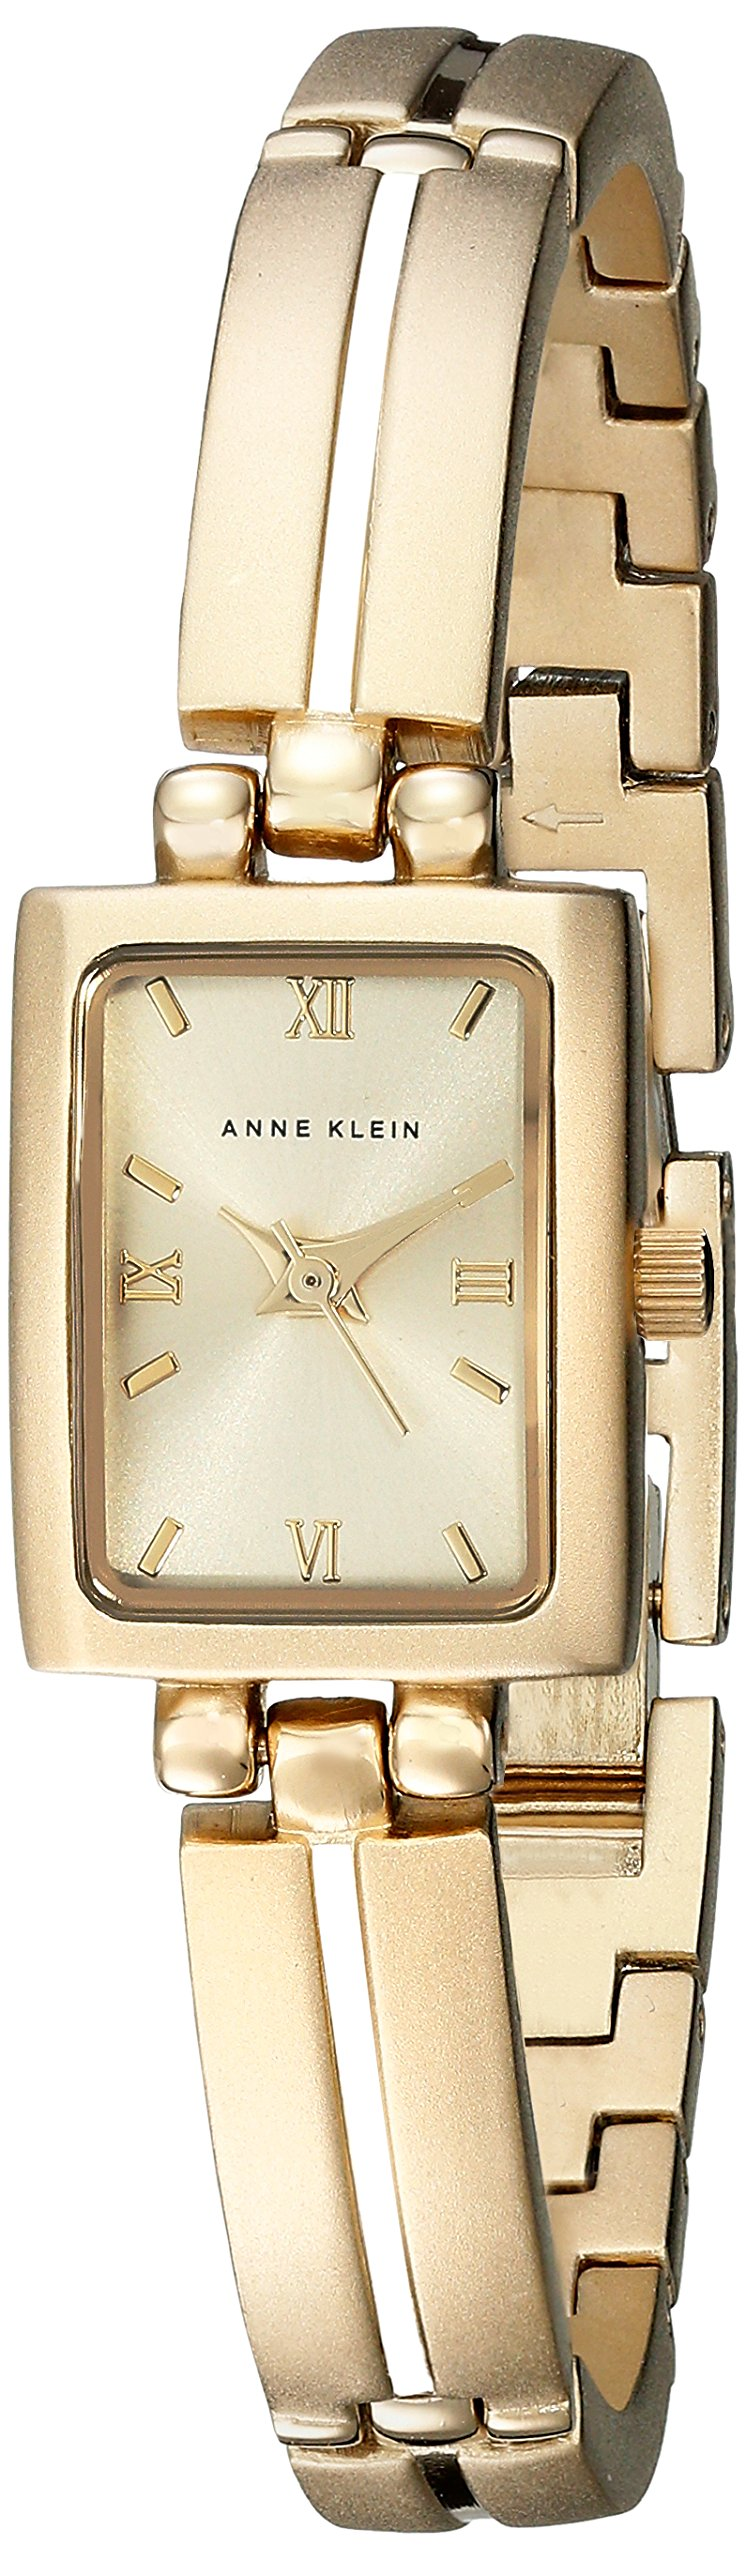 Women's 10-5404CHGB Gold-Tone Dress Watch